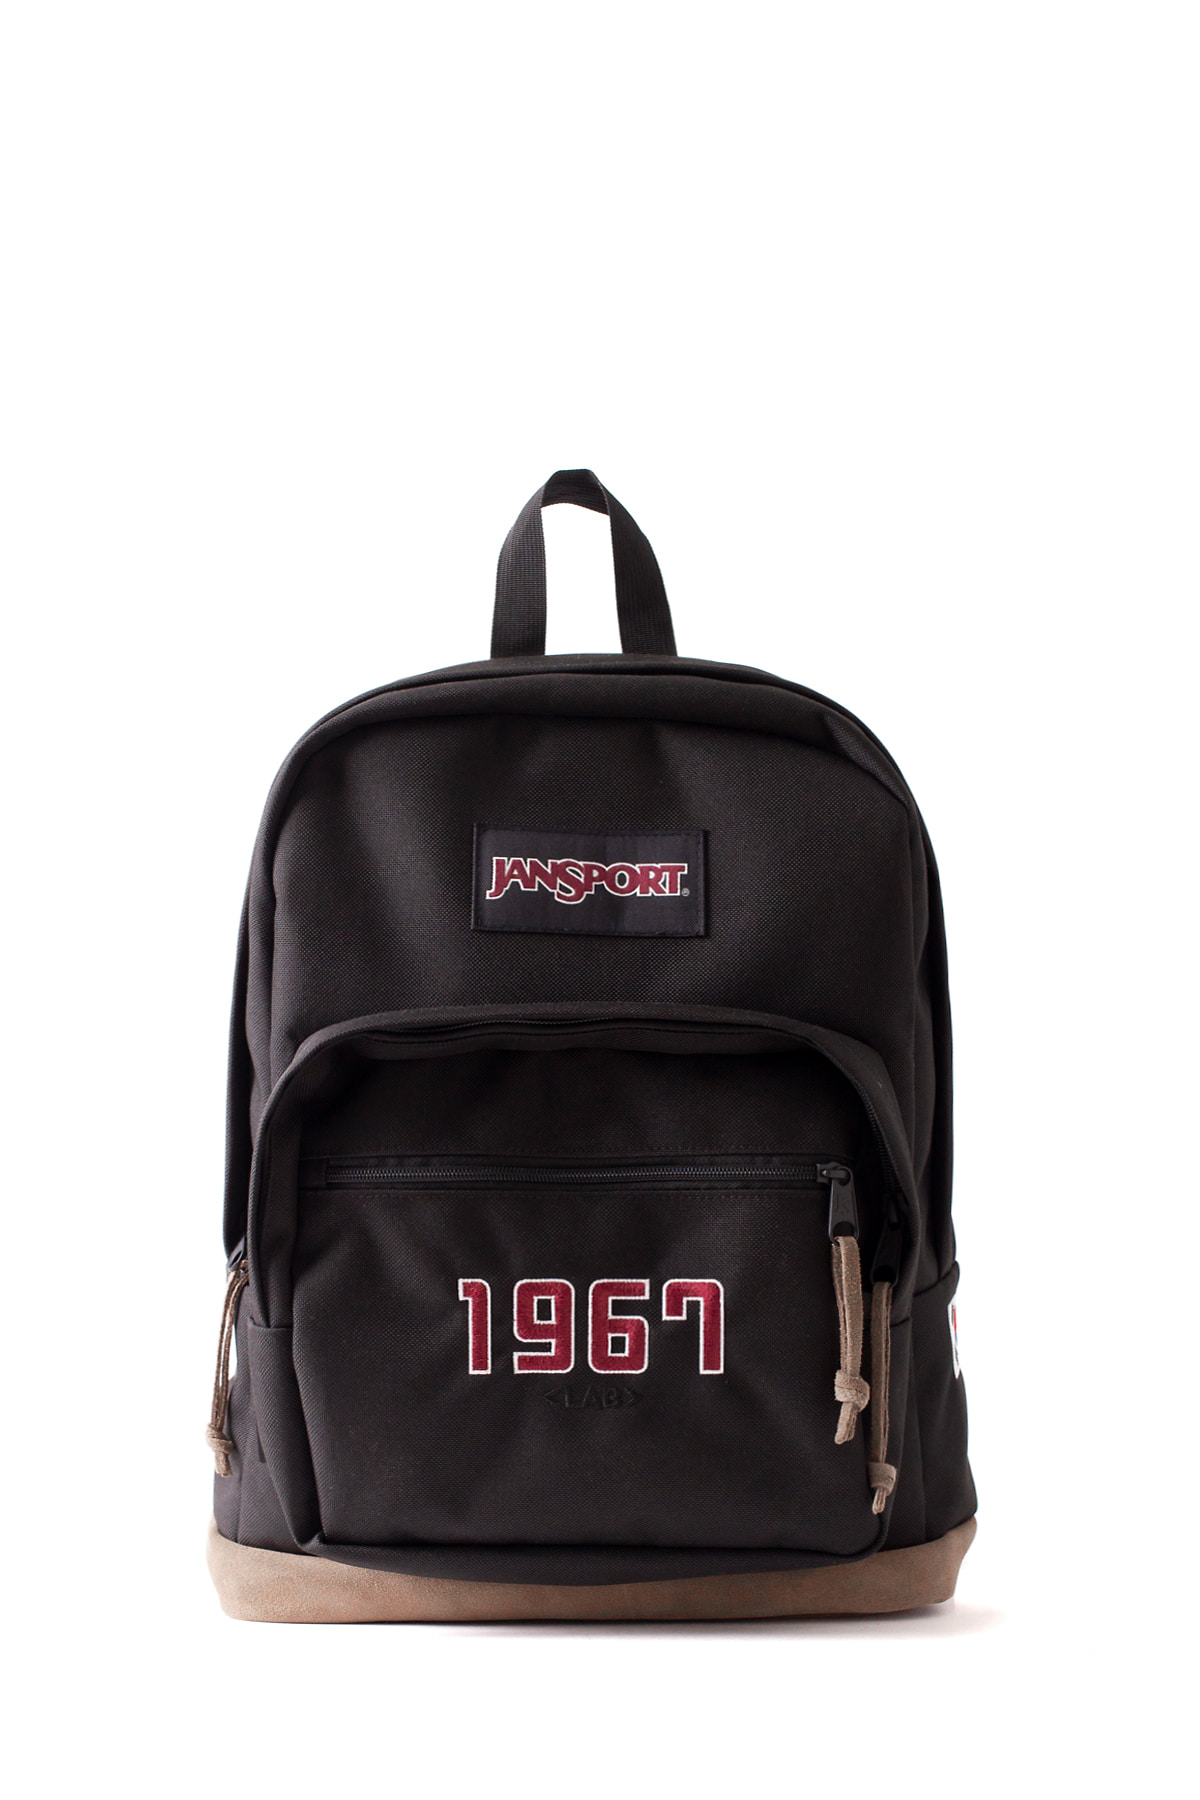 JANSPORT x IAMSHOP Exclusive : Right Pack (Black)